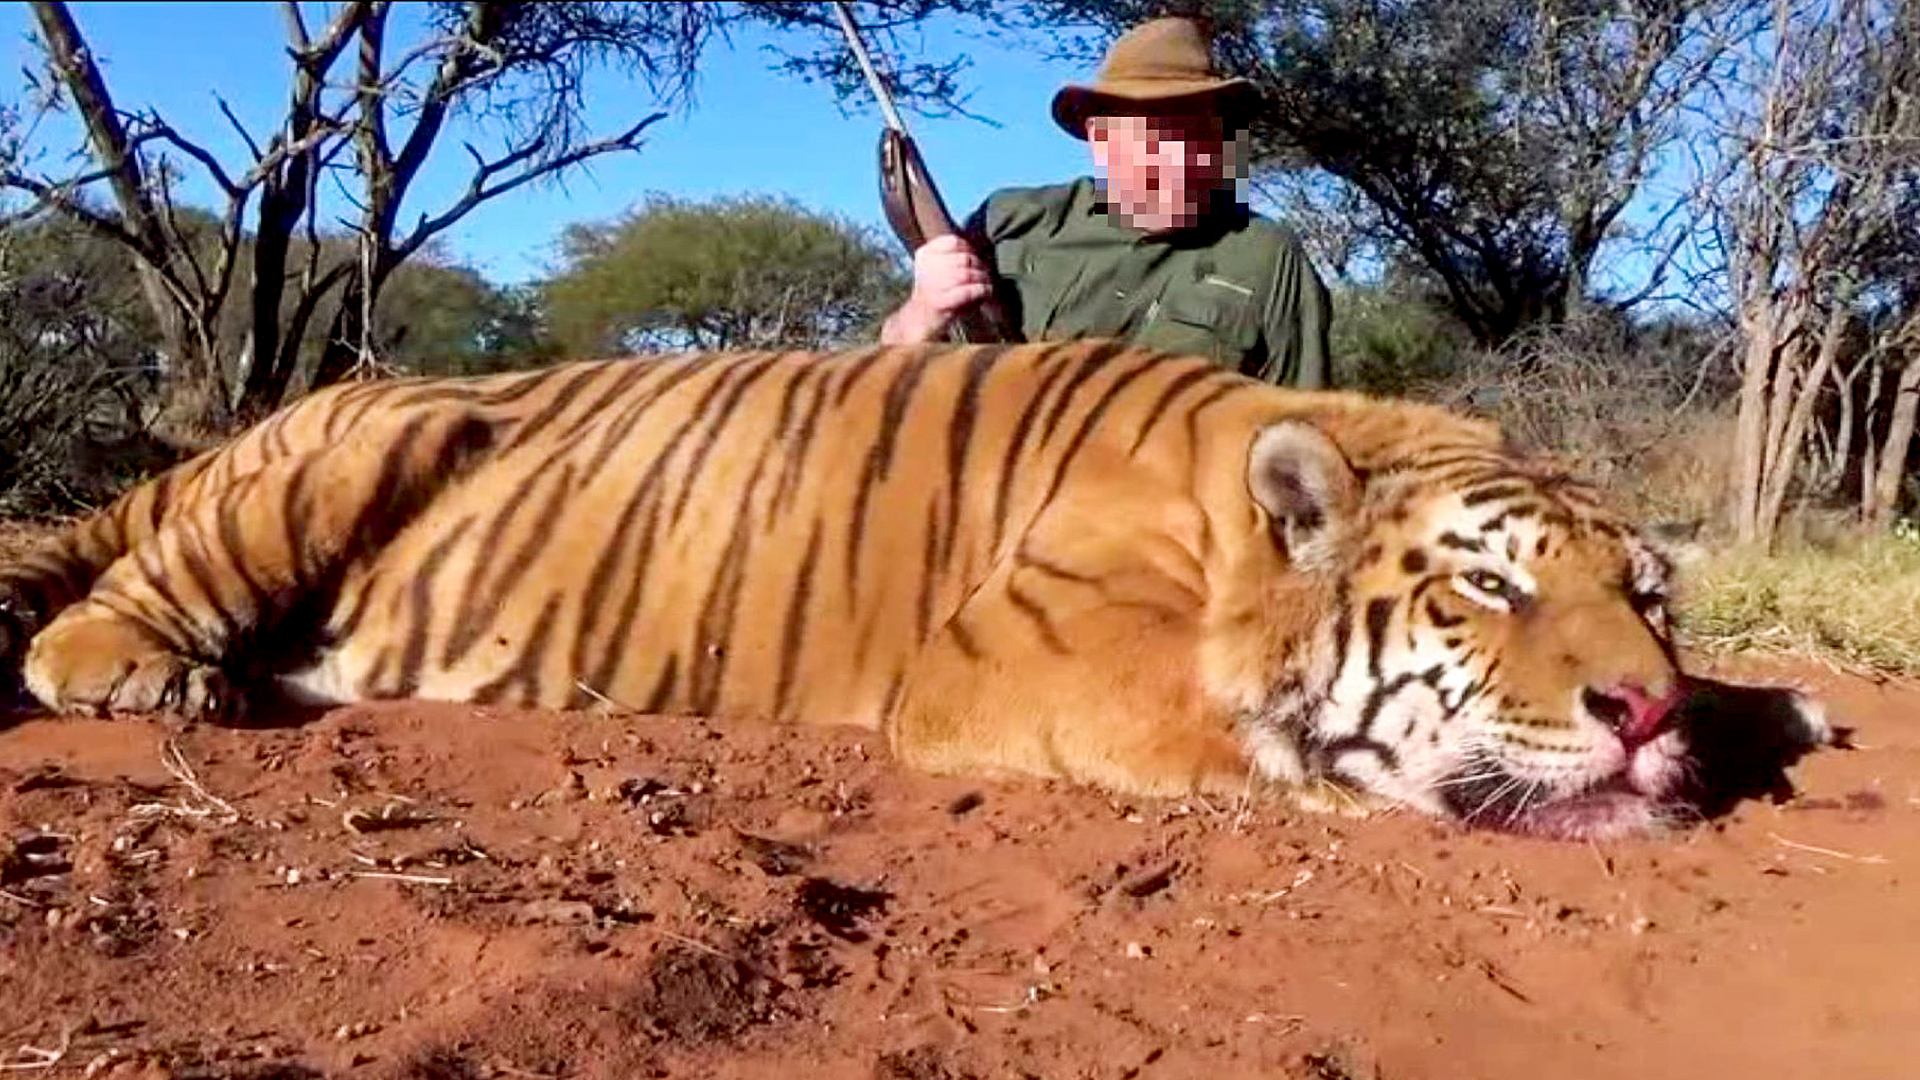 Slovak Hunter Faces Jail For Killing Endangered Tiger And Importing It Home